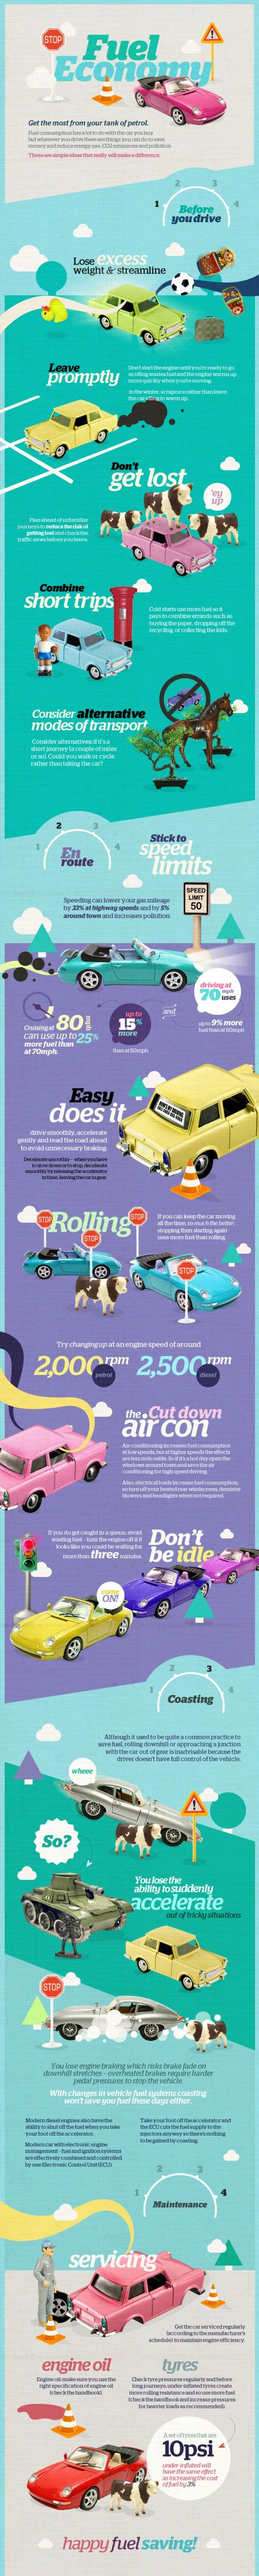 17 Best Infographics Images On Pinterest Info Graphics Diagrams Dragon School Of Motoring Better Fuel Economy Why Spend More Petrol When You Could Save That Money For